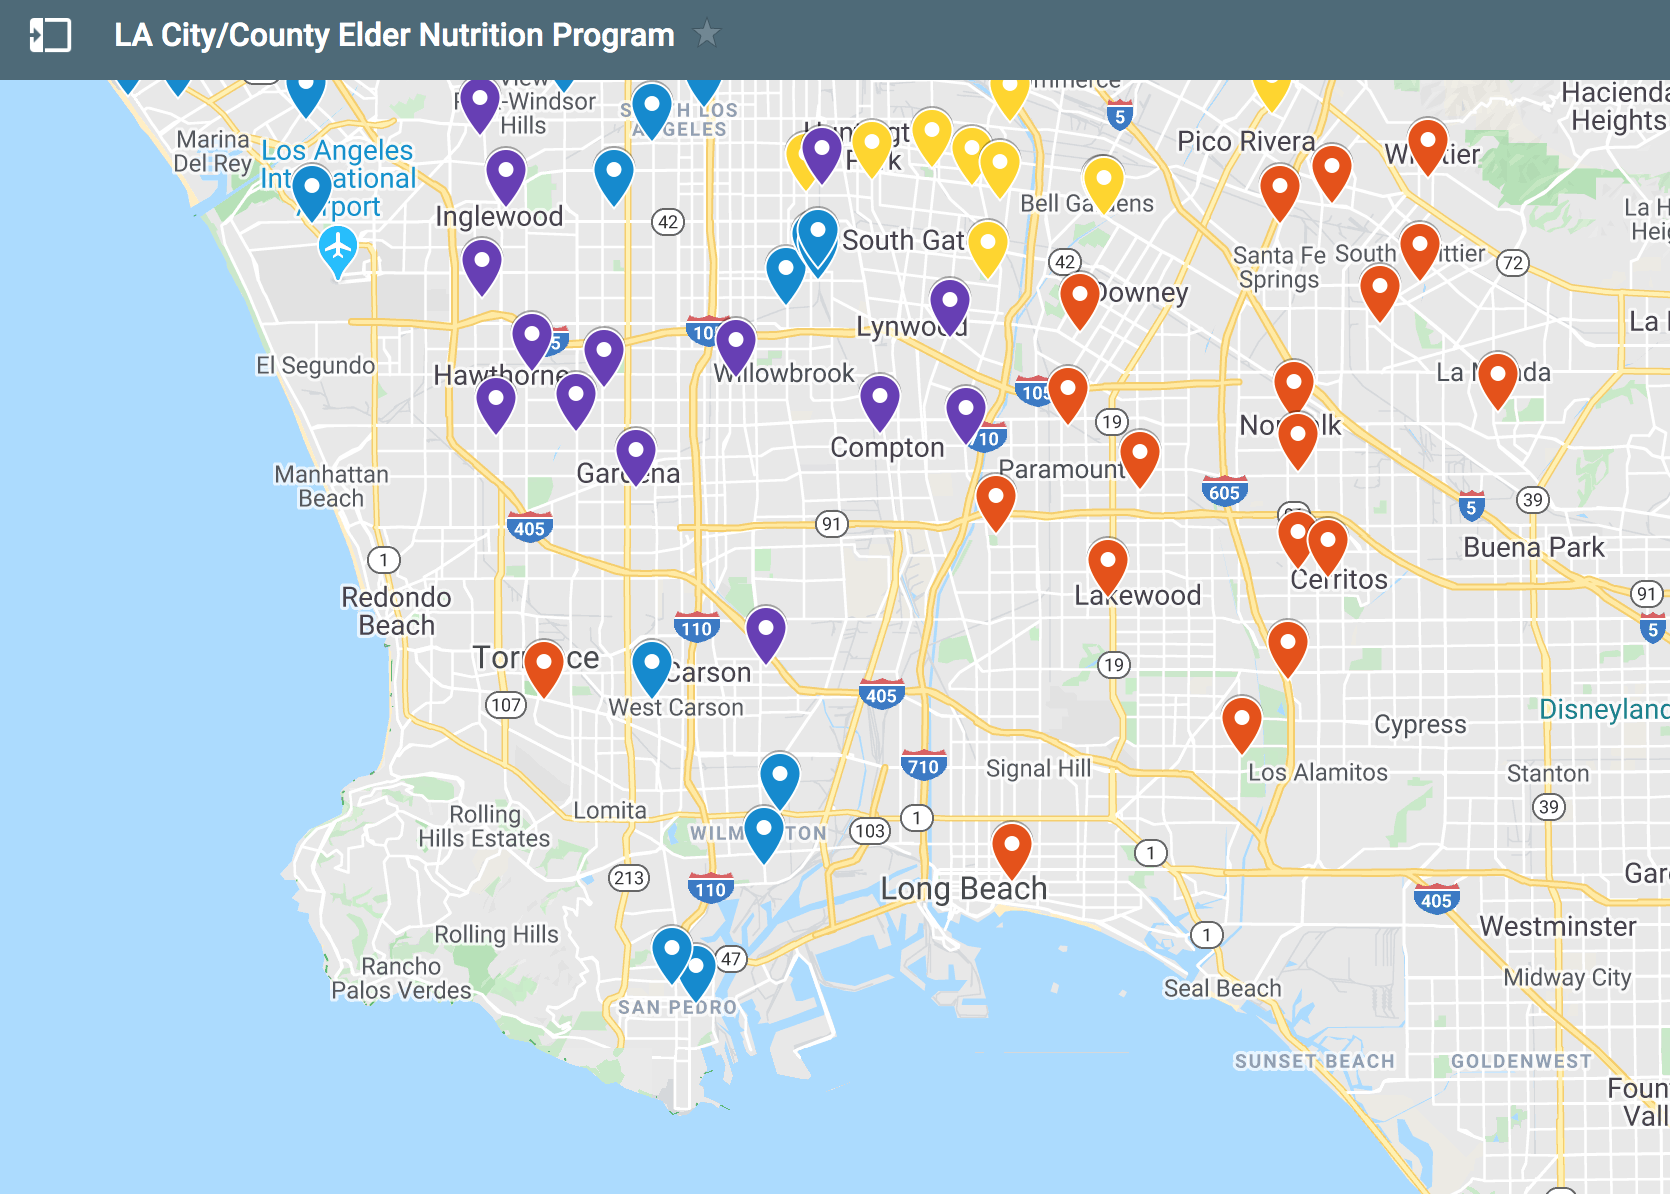 Map of Senior Centers and Resources